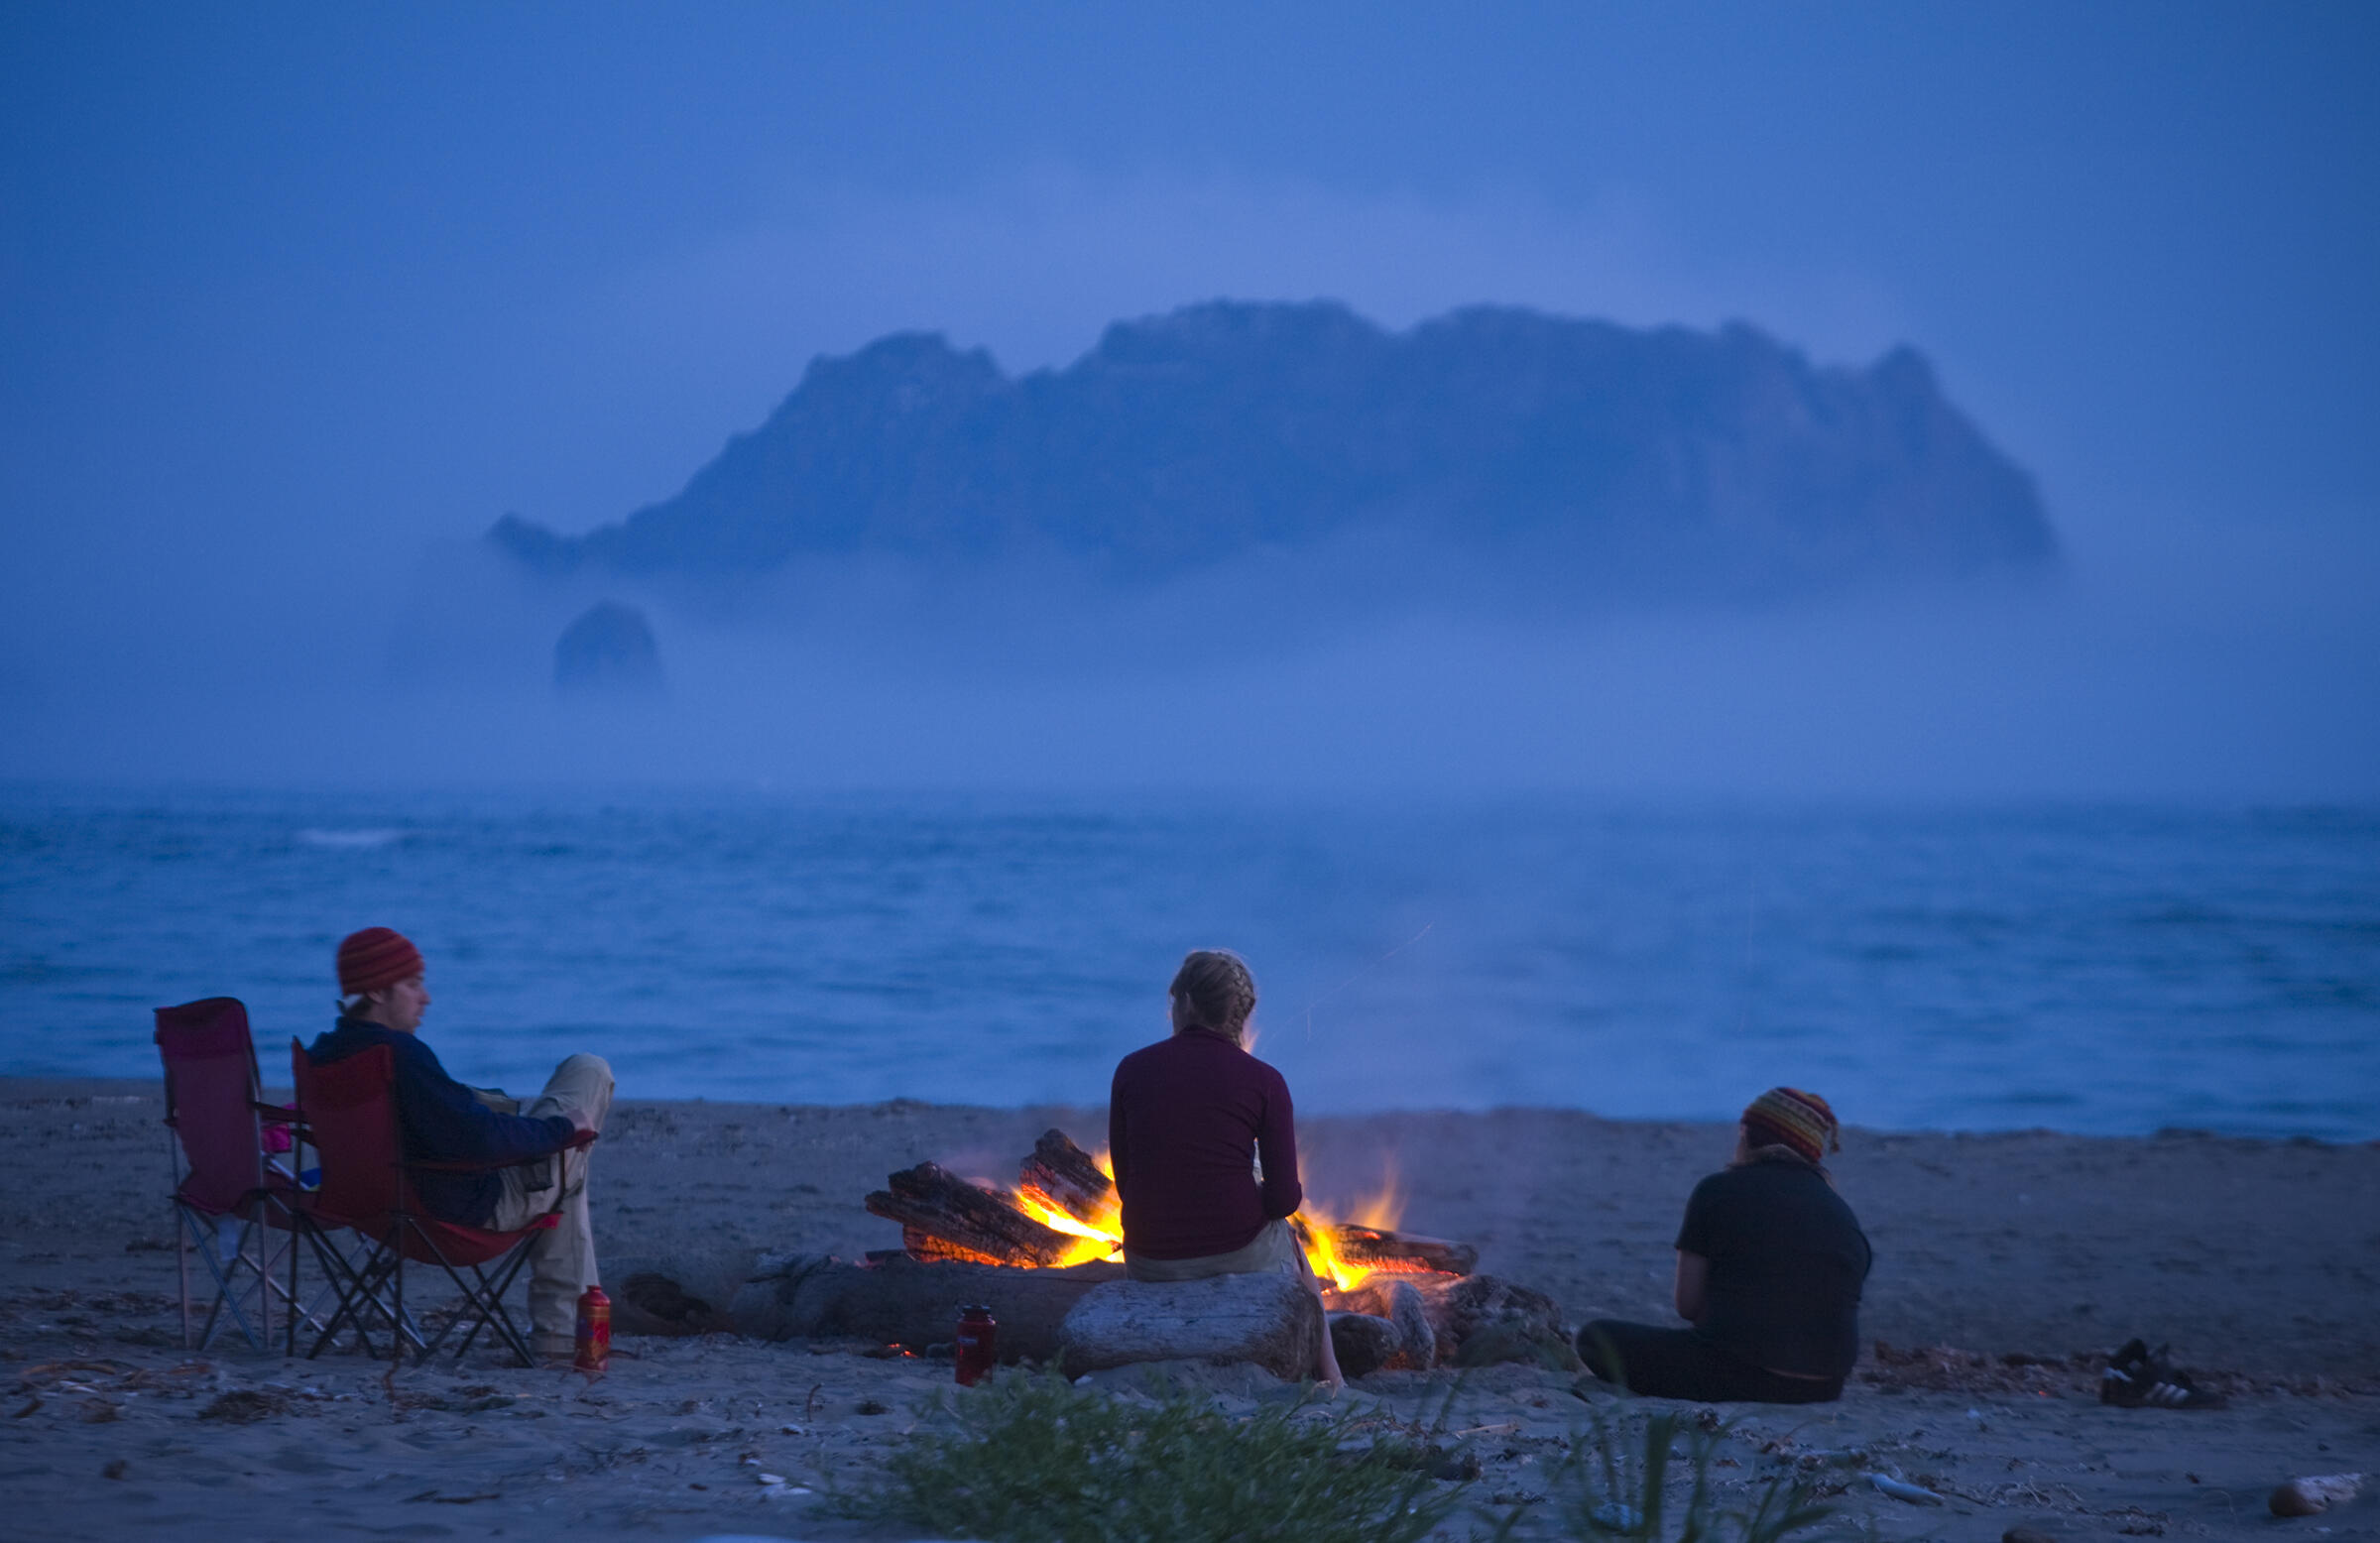 Campers sit by a campfire on the beach at Norwegian Memorial, Olympic National Park North Coast, Washington. Ethan Welty/Tandemstock.com